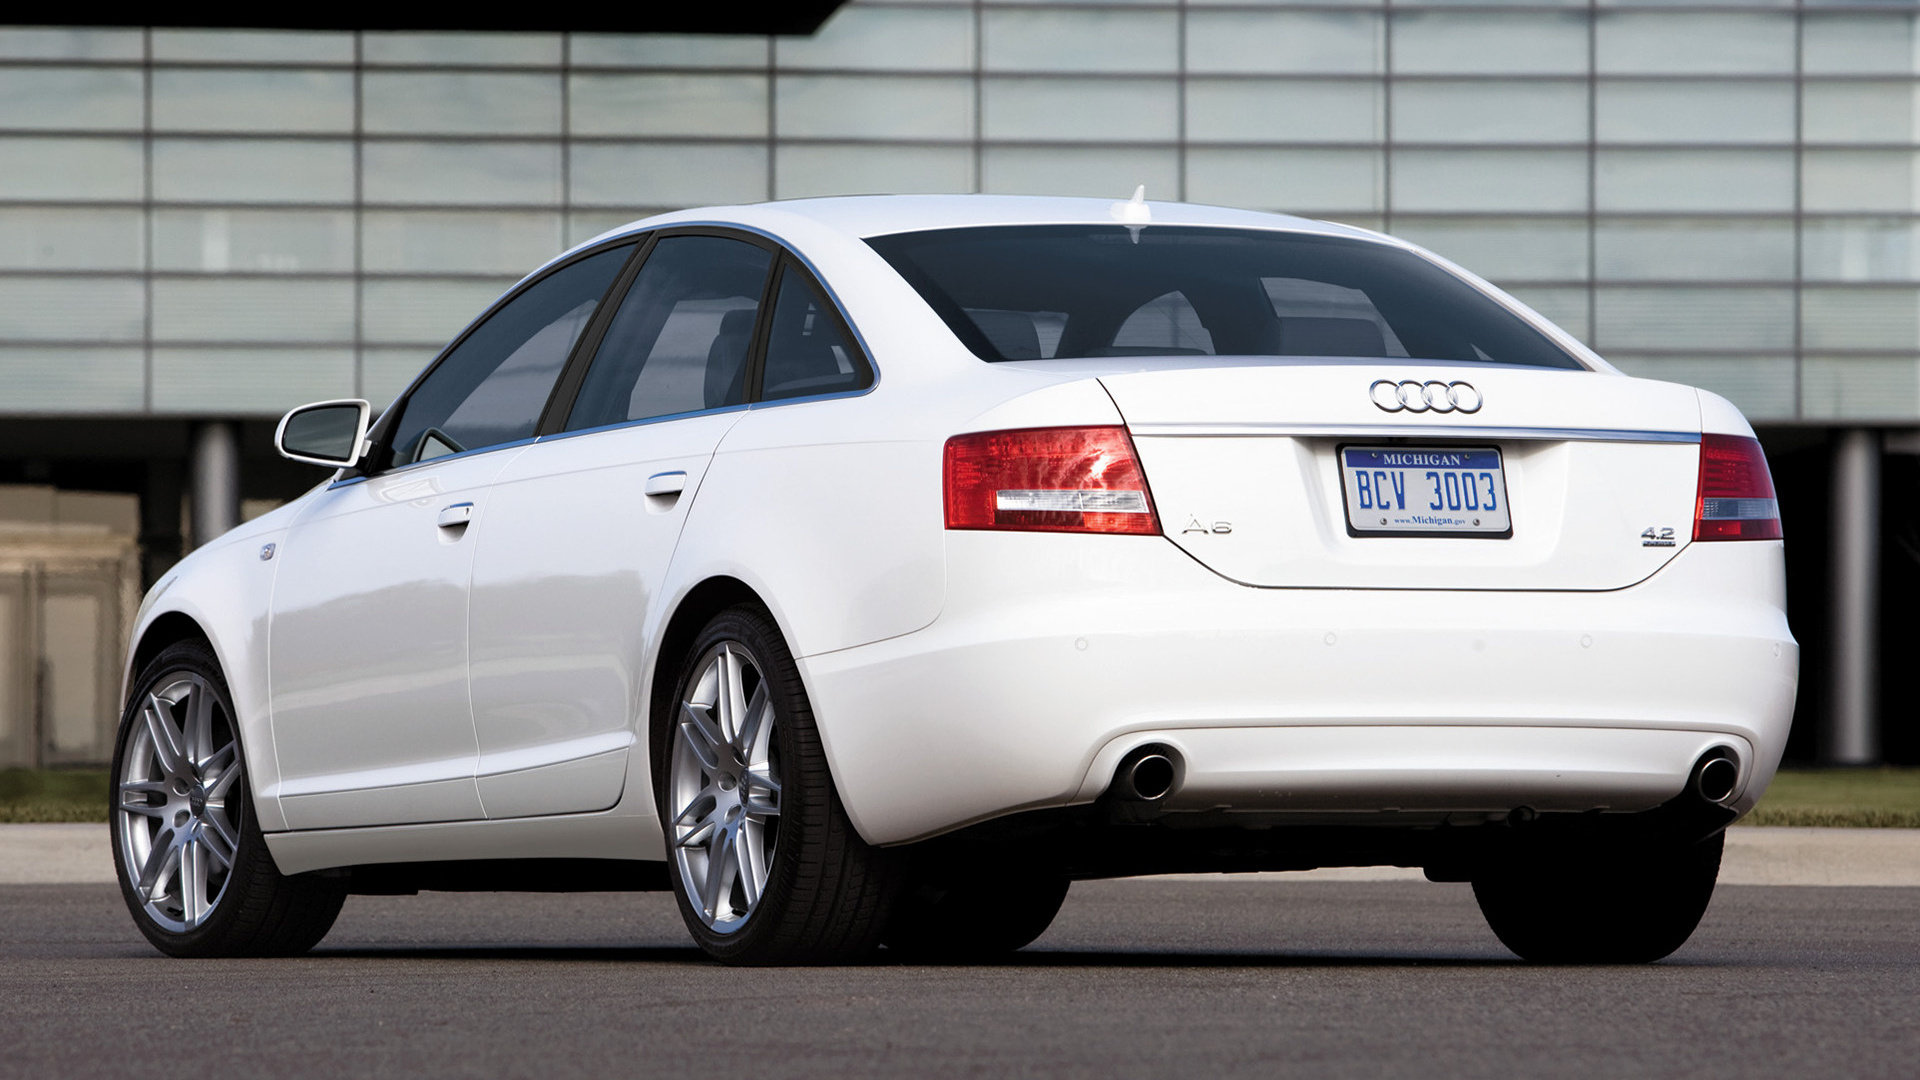 2005 Audi A6 Sedan S line (US) - Wallpapers and HD Images ...